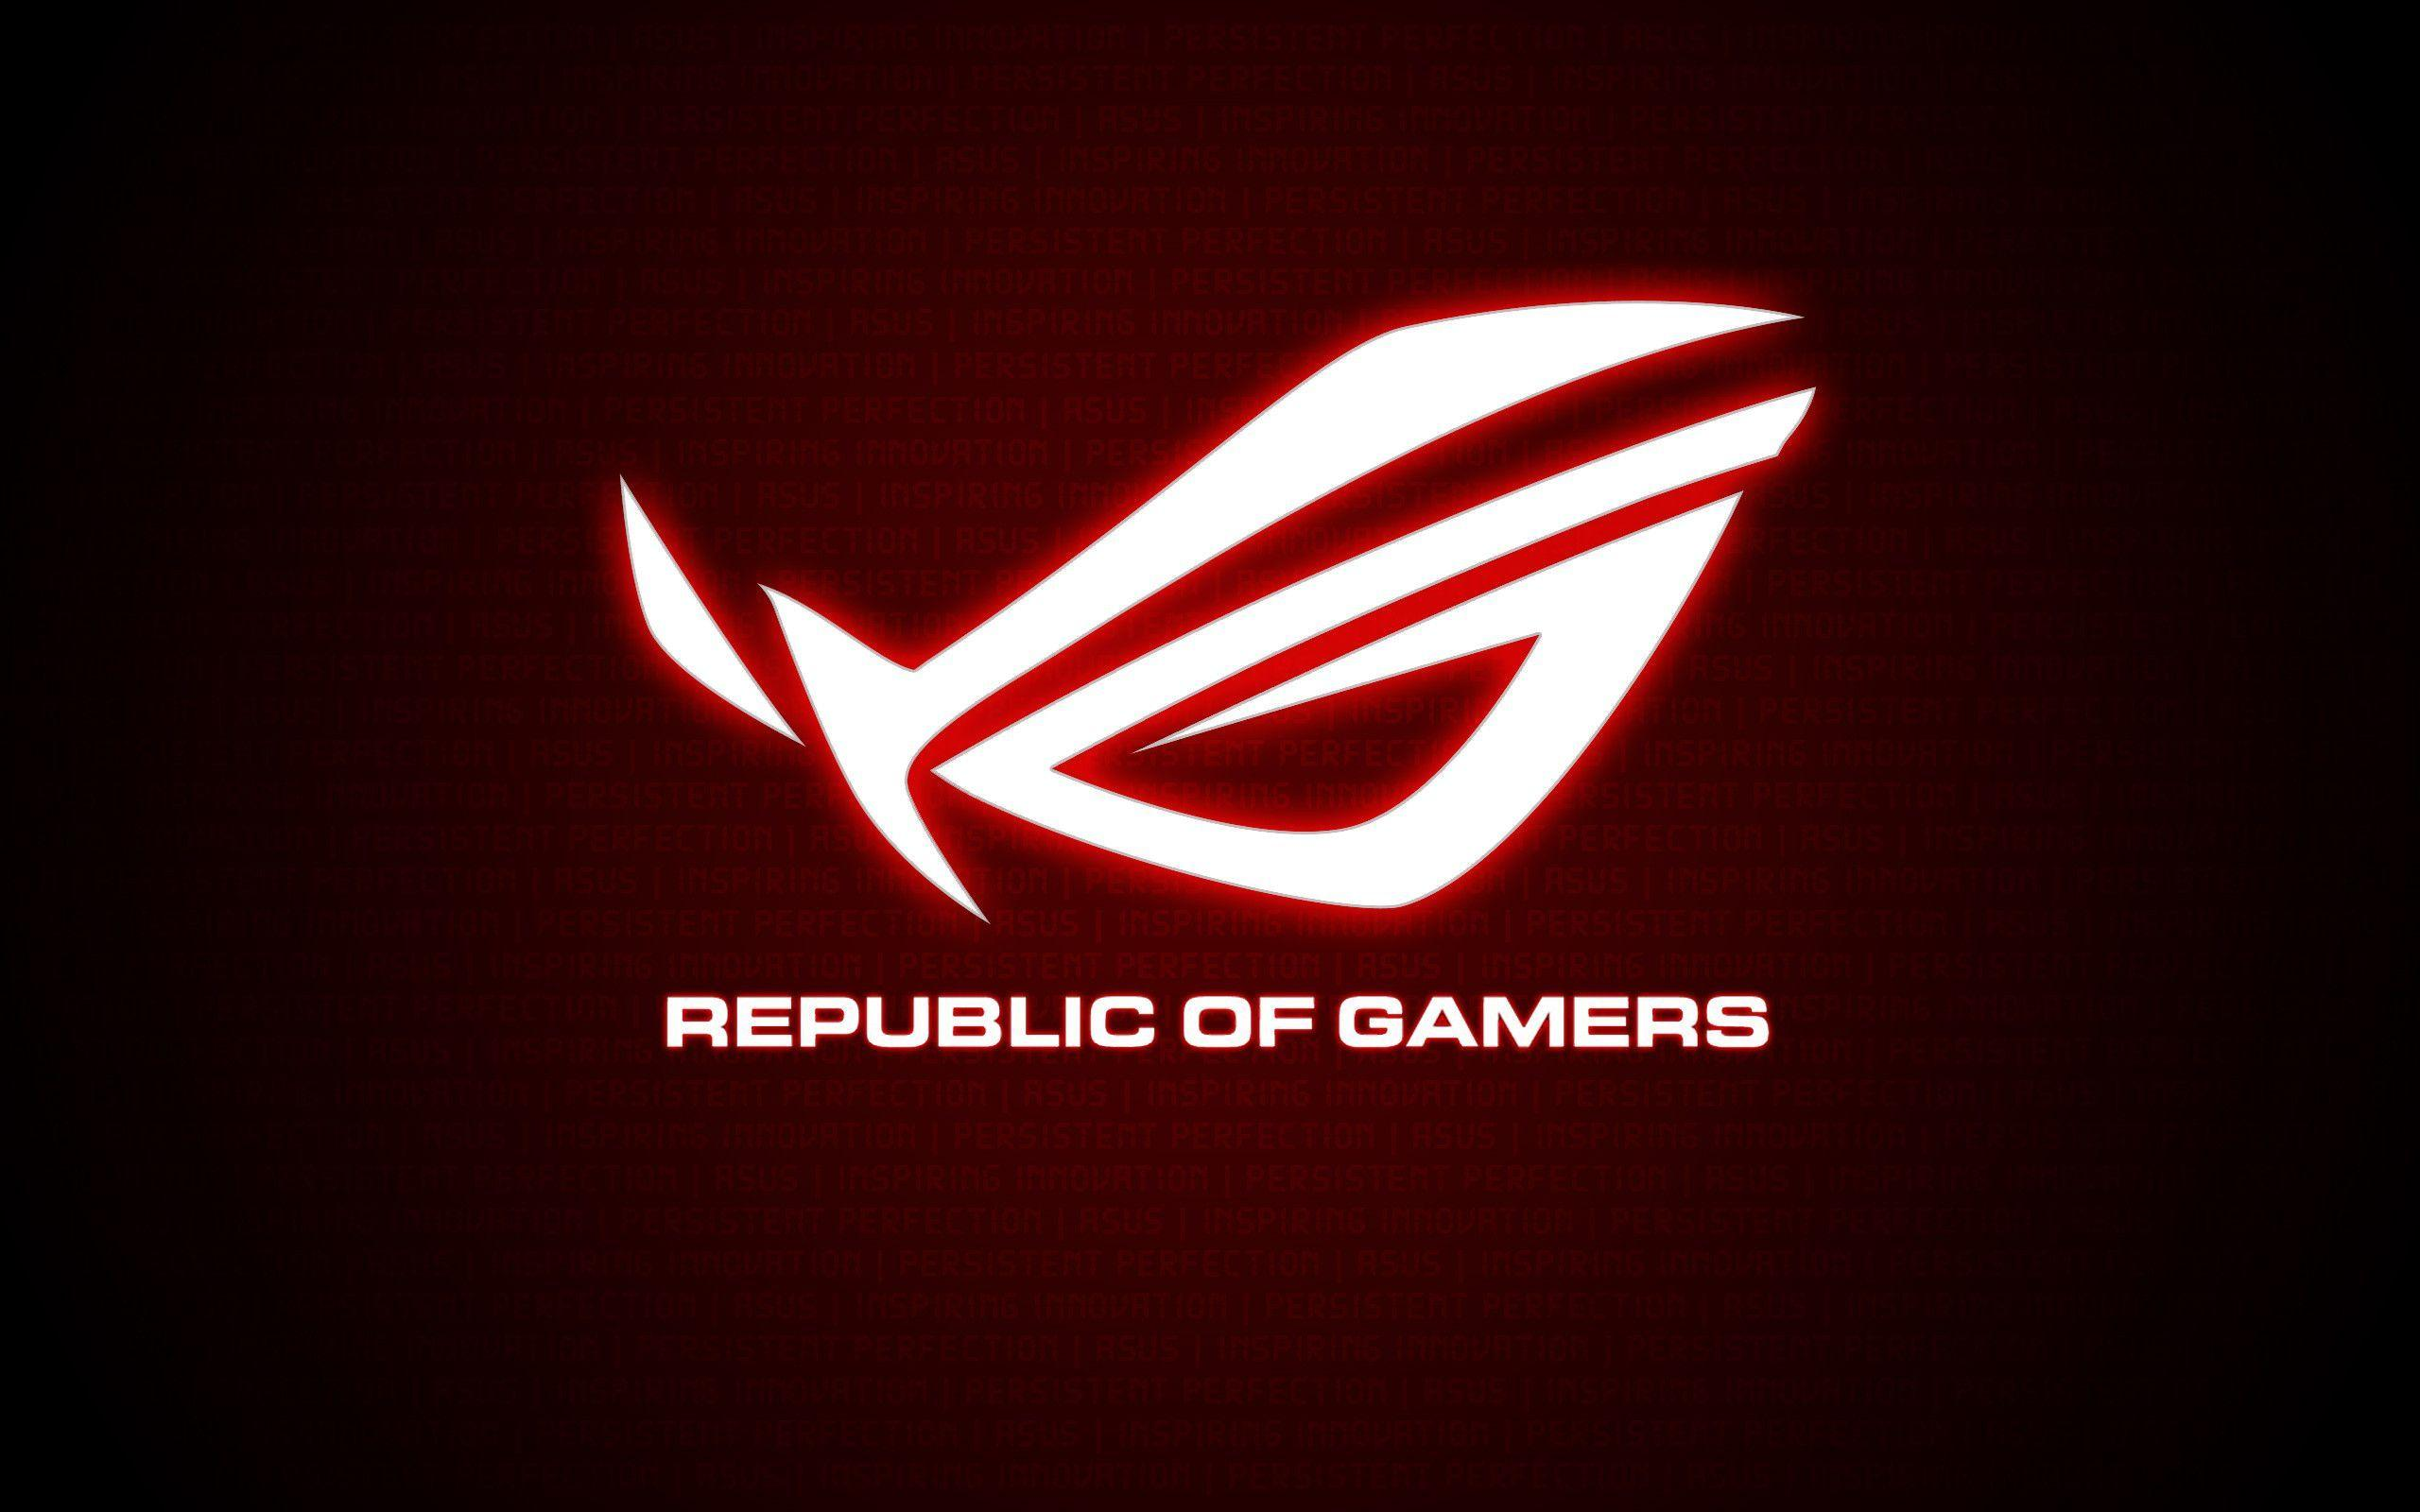 Republic Of Gamers Wallpapers 2560x1600